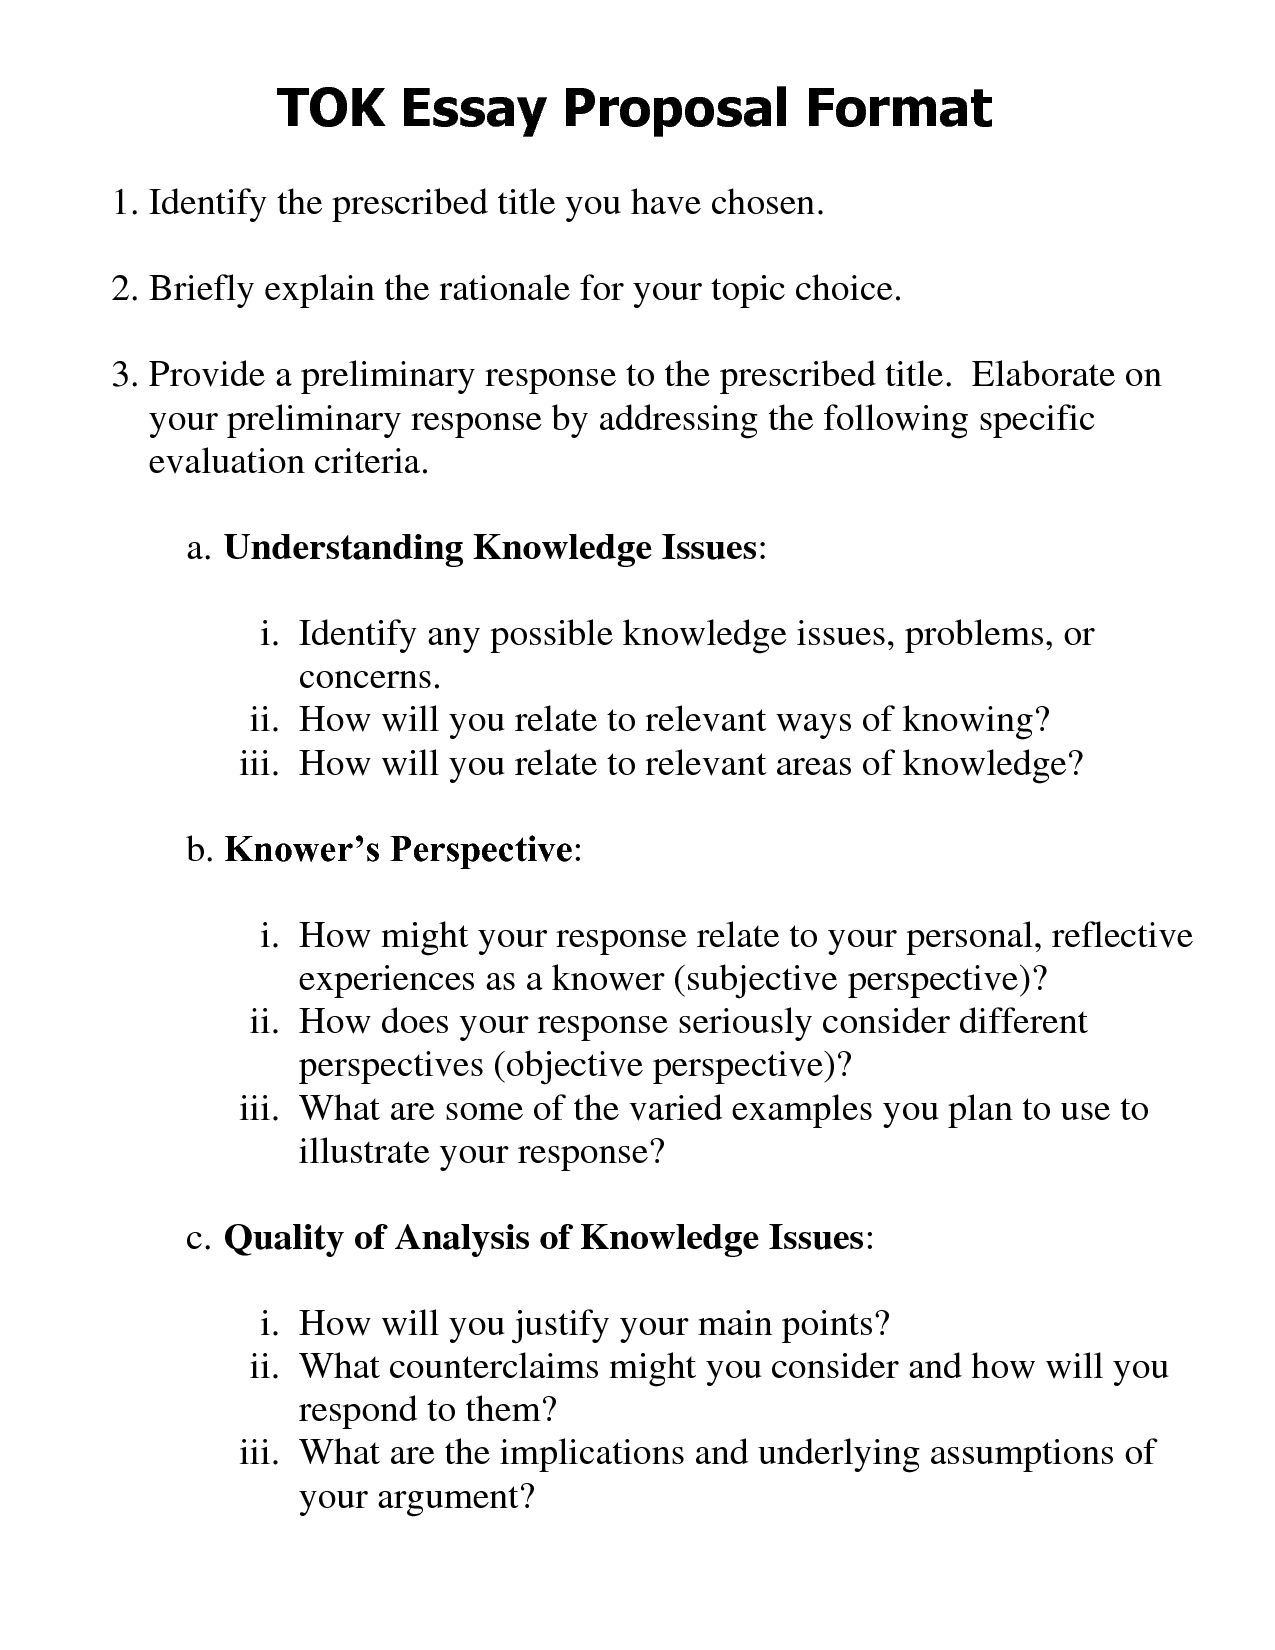 Introducing Myself Essay Writing A Proposal Essay Commonpenceco Writing A Proposal Essay Essay About Ecotourism also Persuasive Essay On Marijuana English Language Essay English Persuasive Essay Topics Learning  Essay On Symbolism